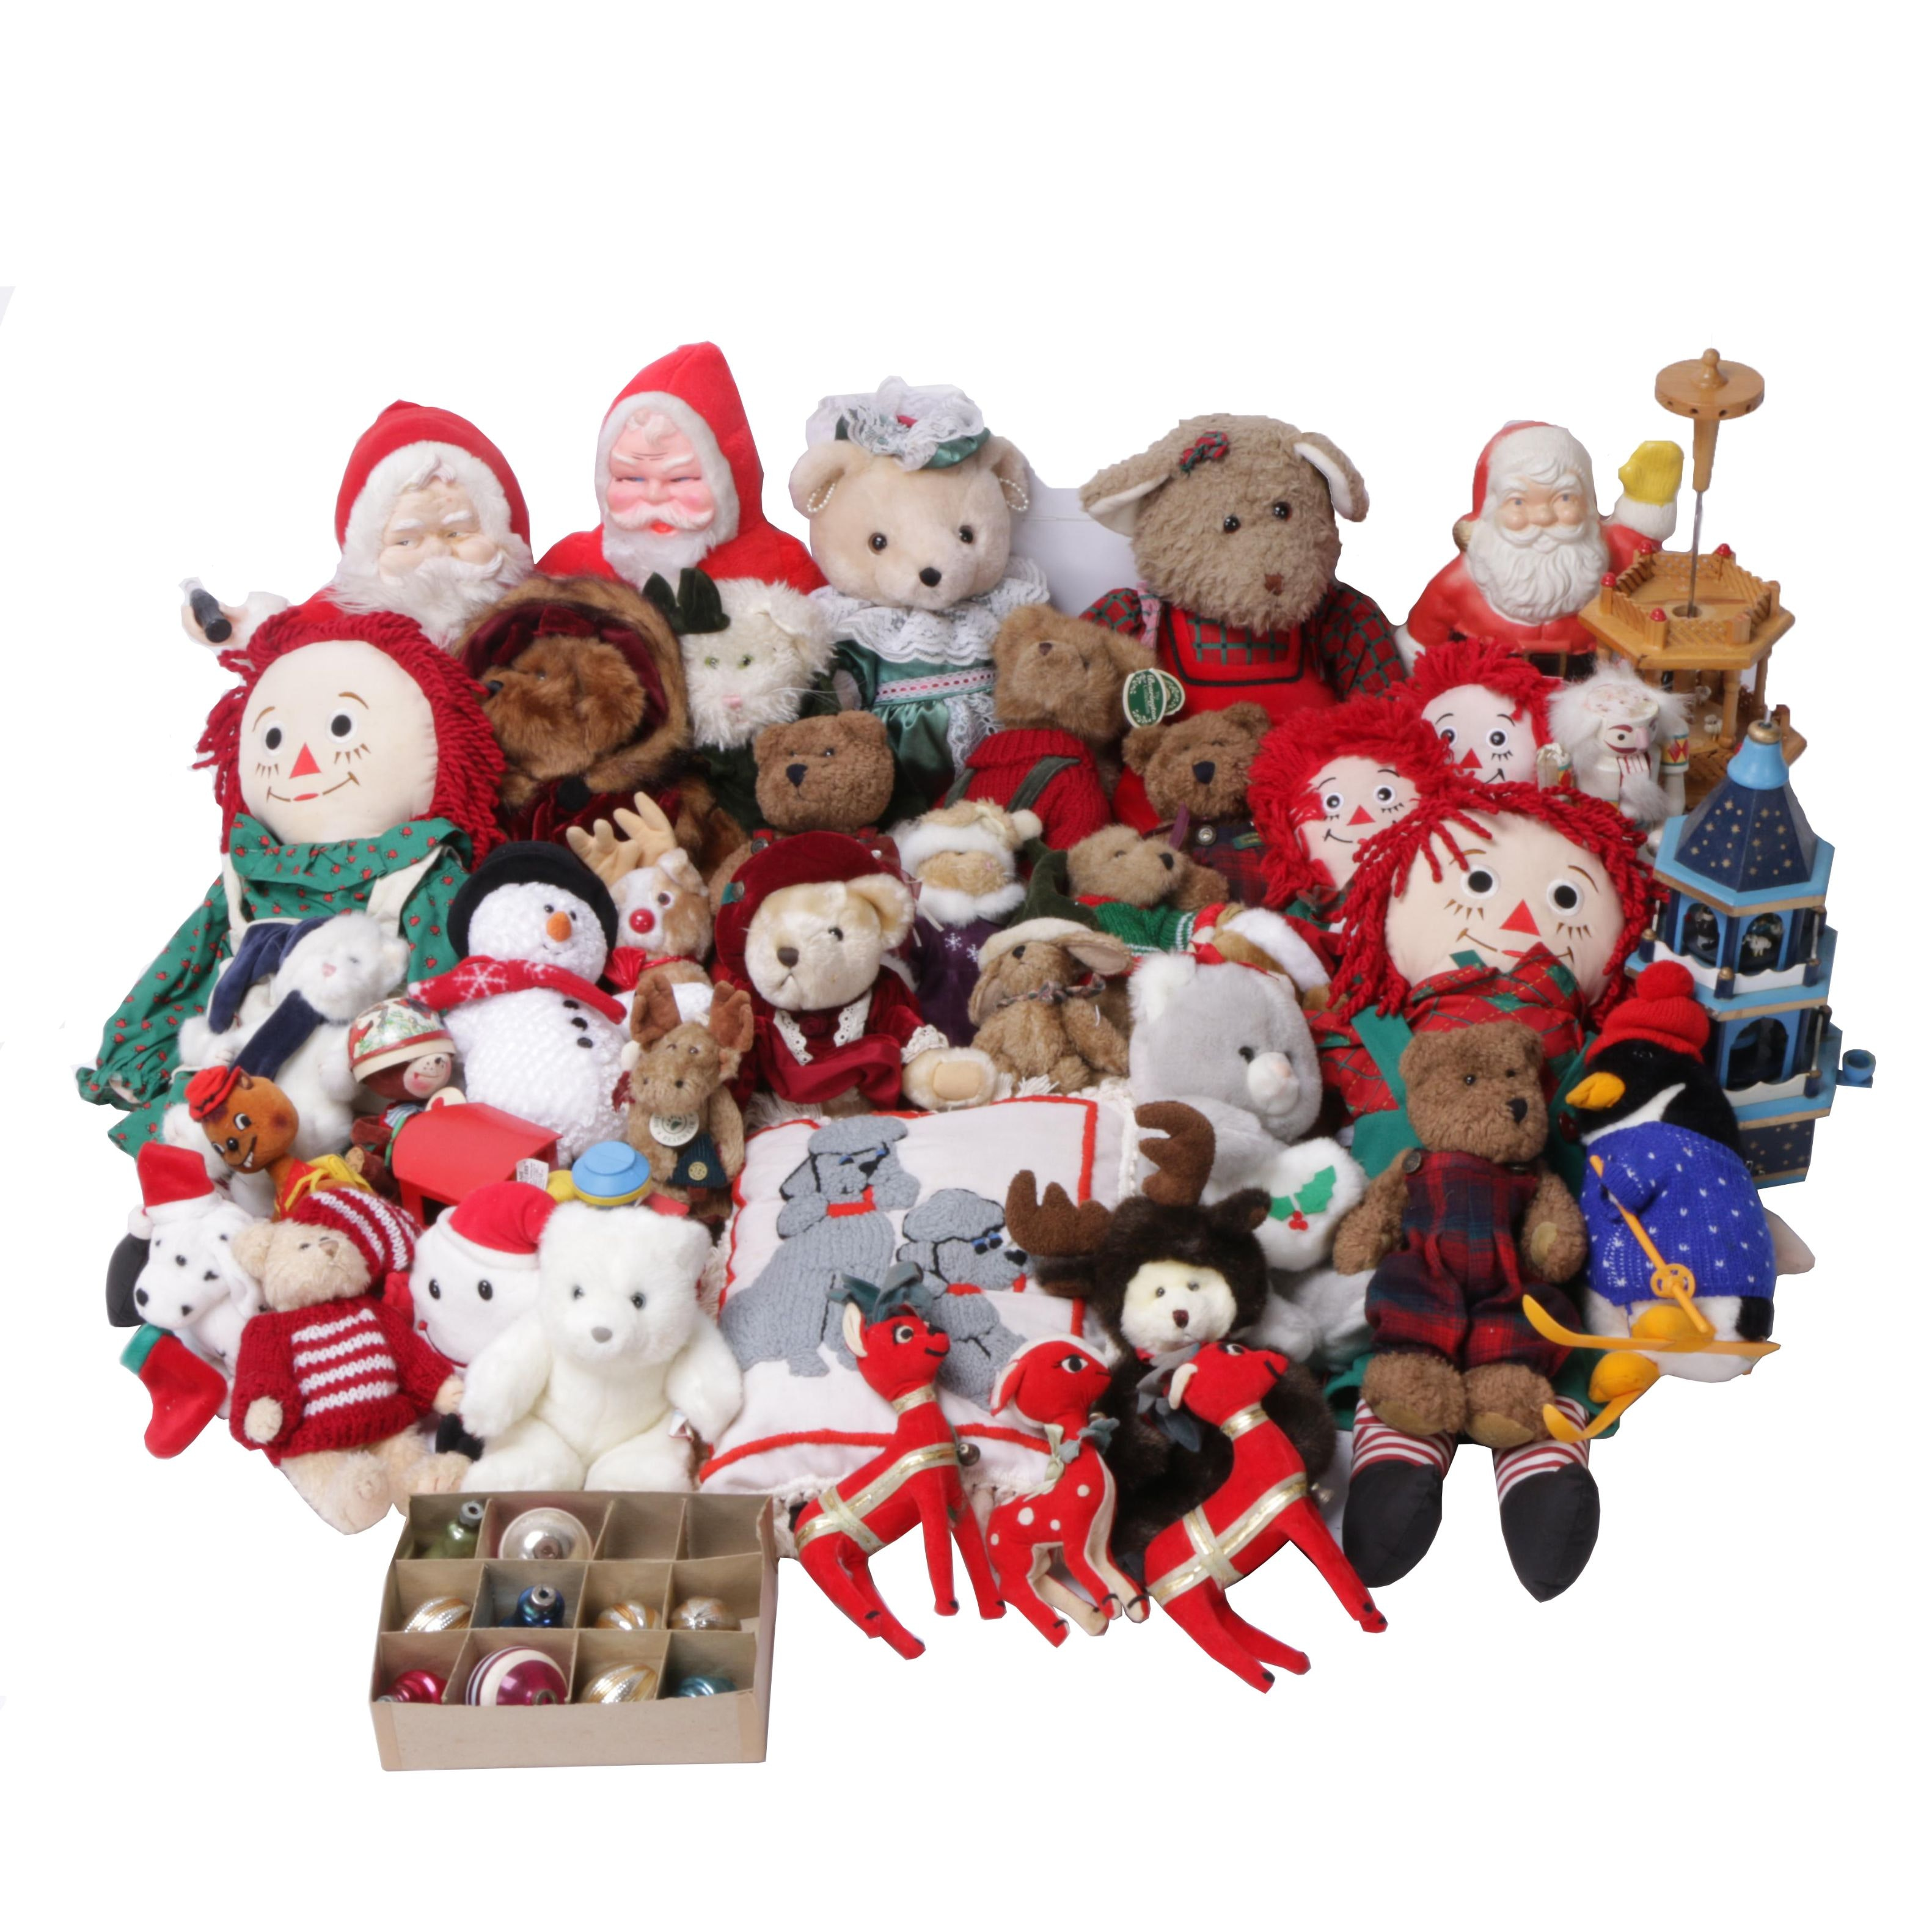 Vintage Christmas Themed Stuffed Animals, Toys, Ornaments and Dolls